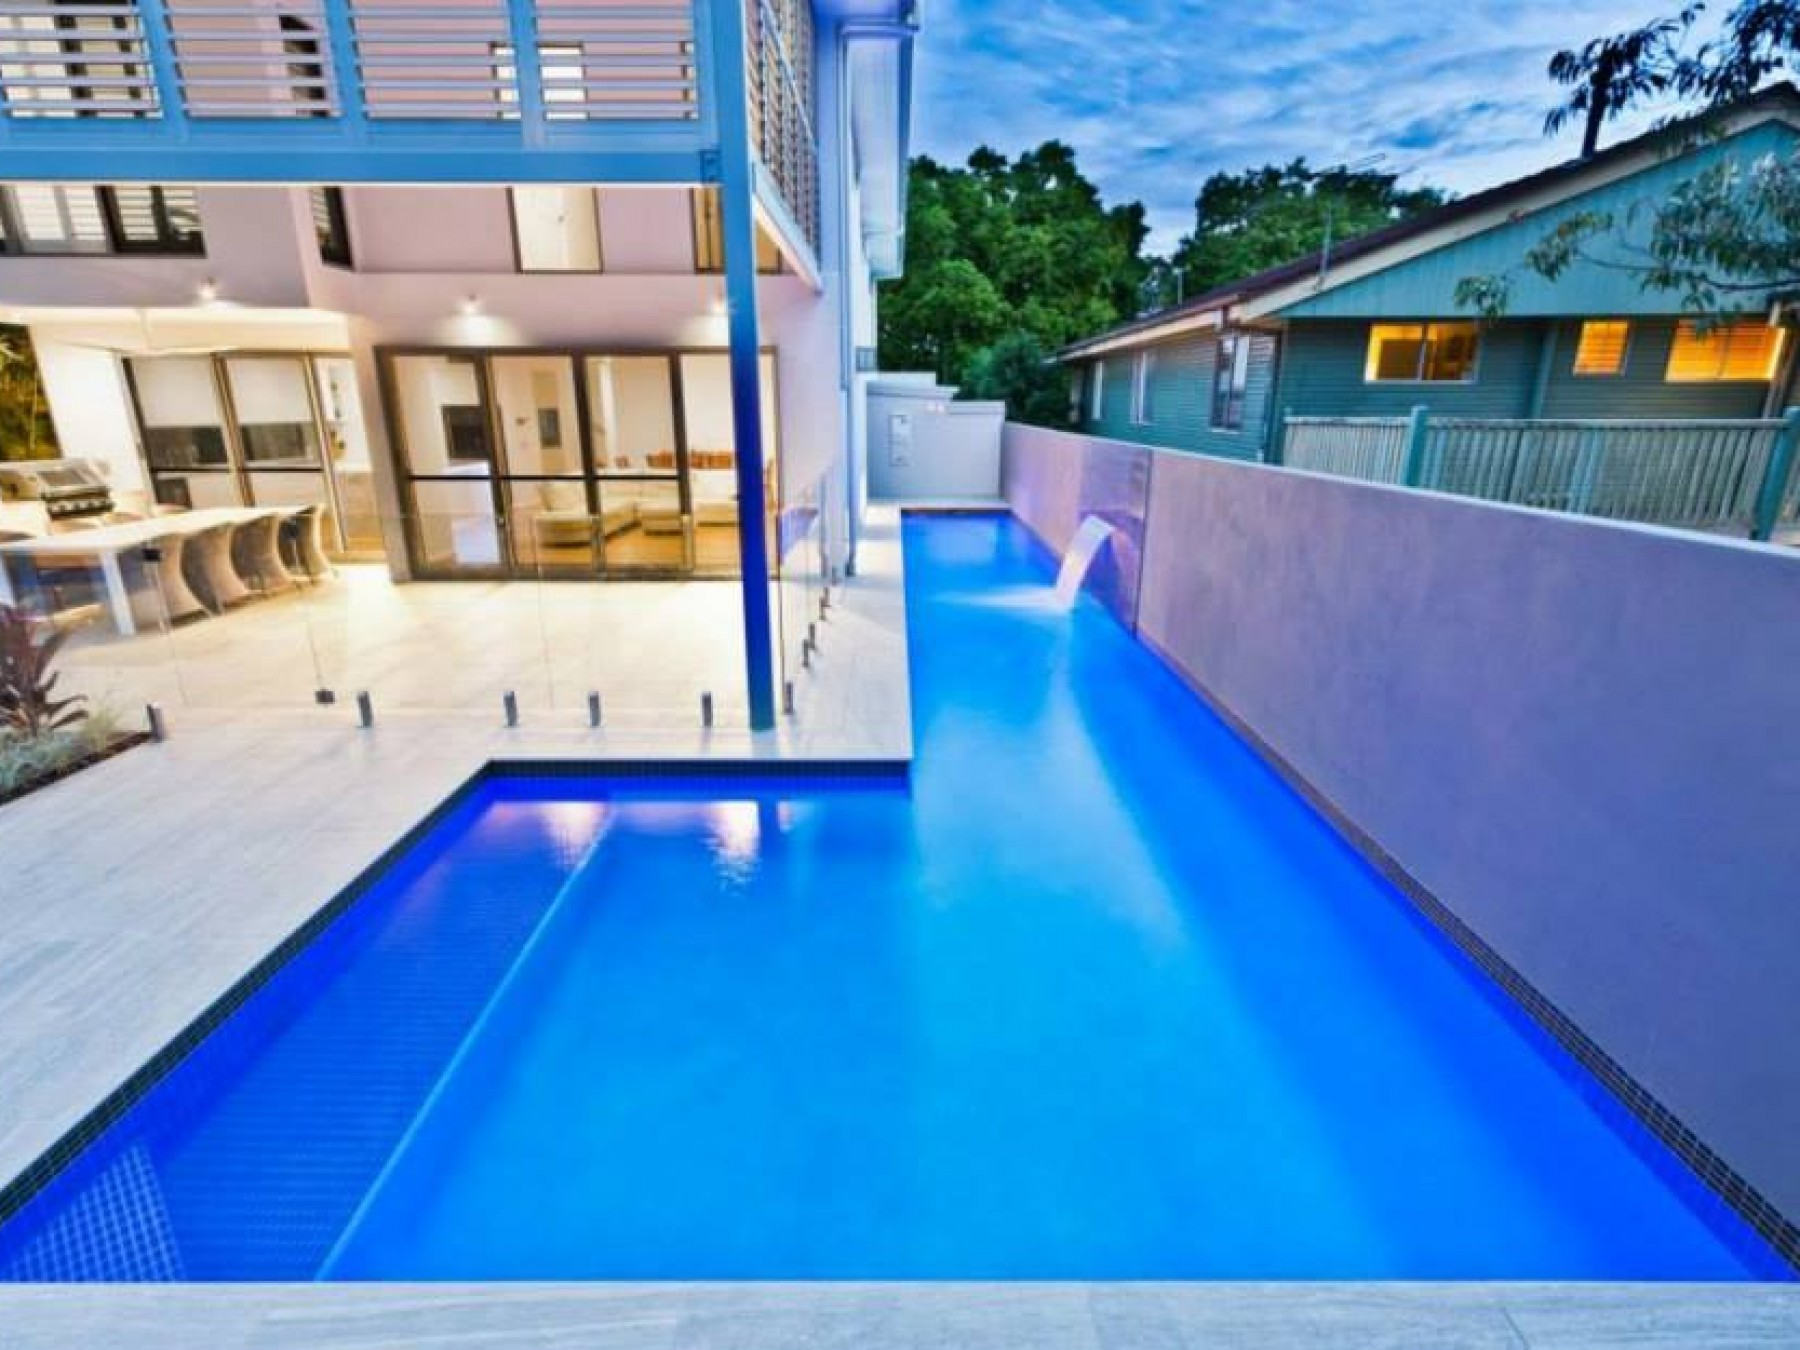 Selling or Leasing a pool in Geebung